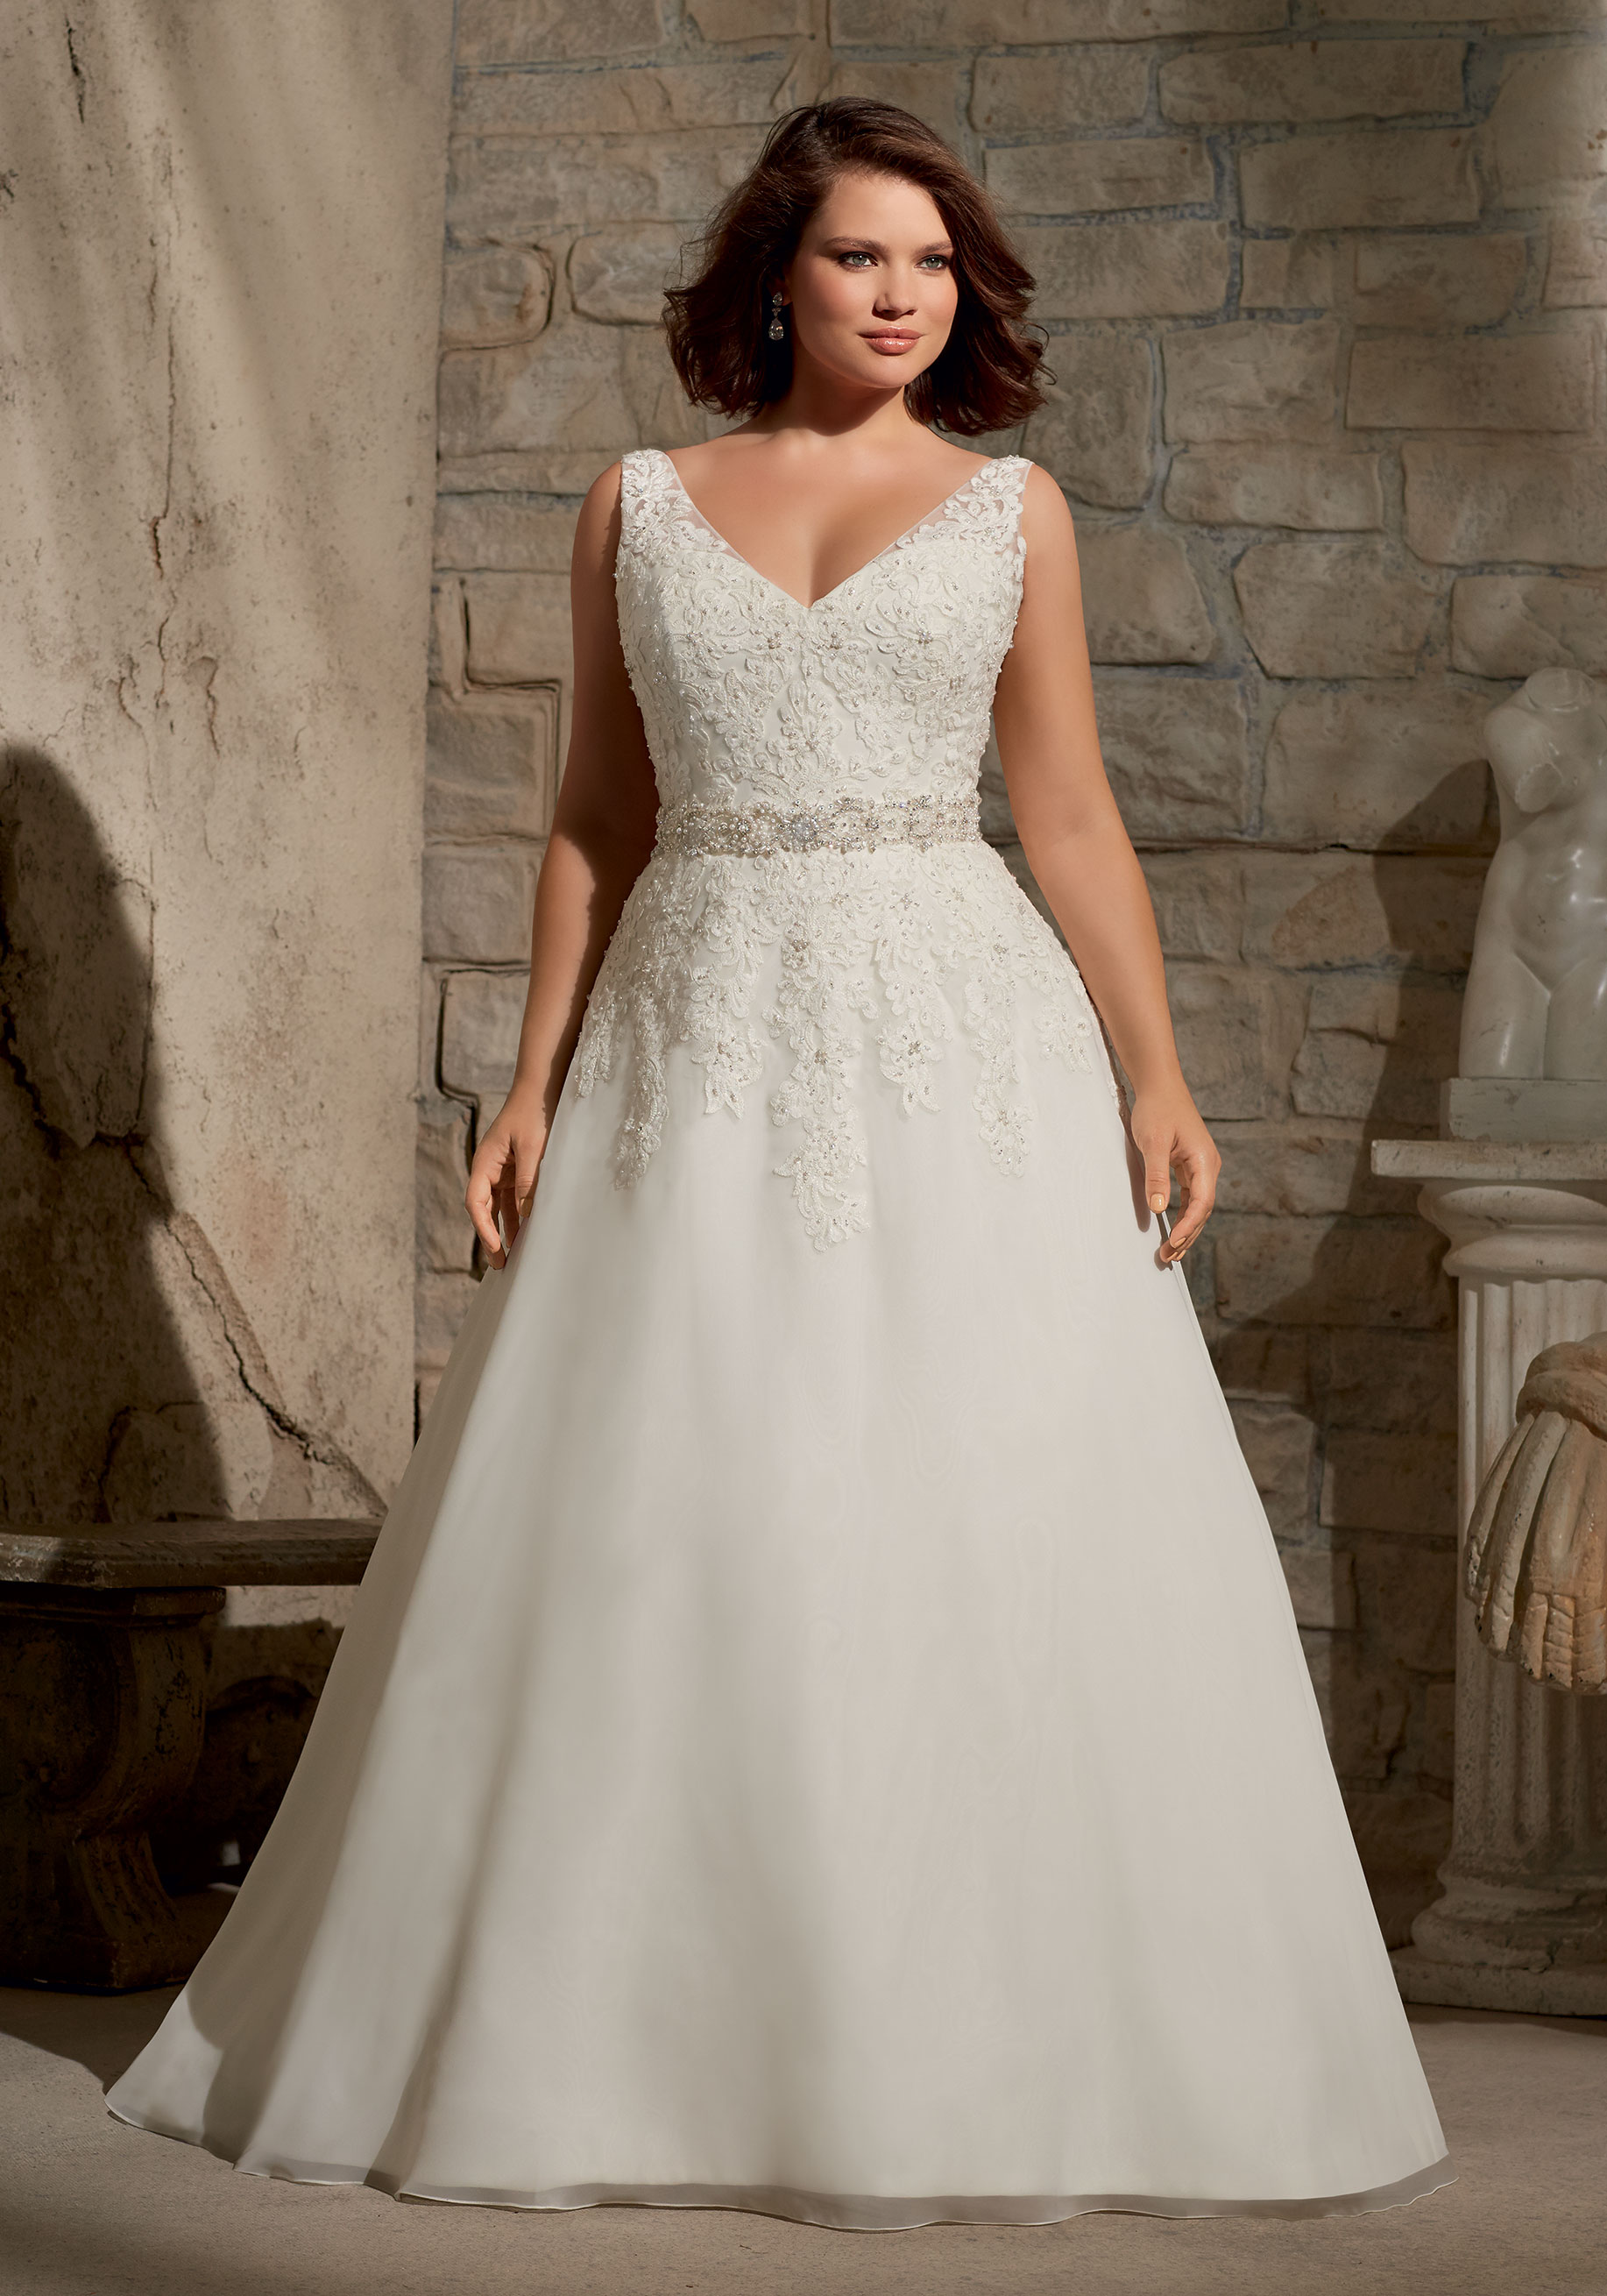 Witchy wedding dresses